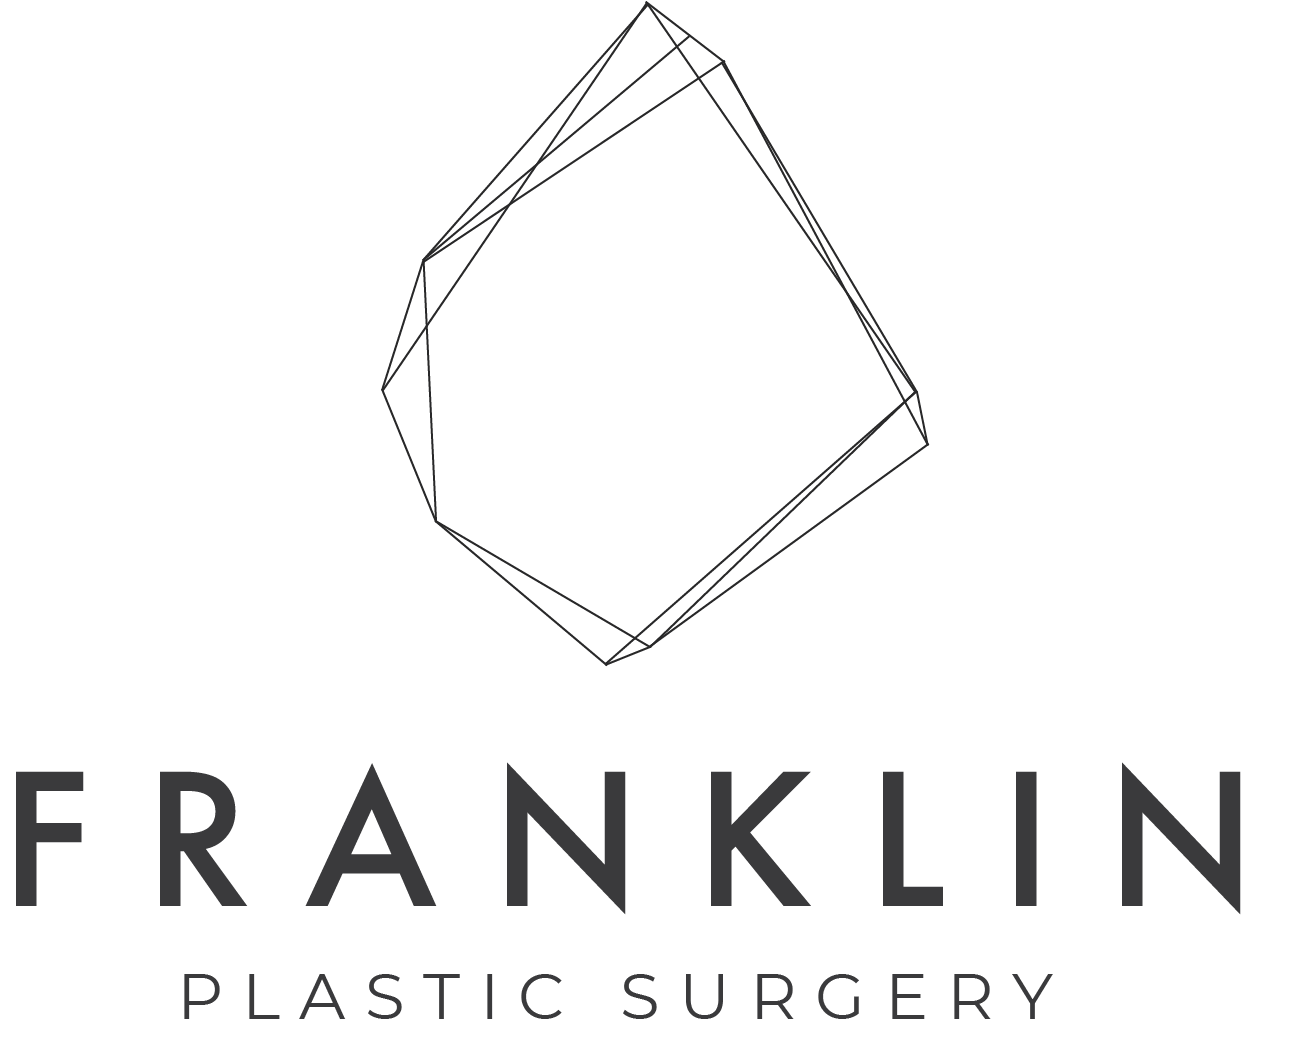 Franklin Plastic Surgery